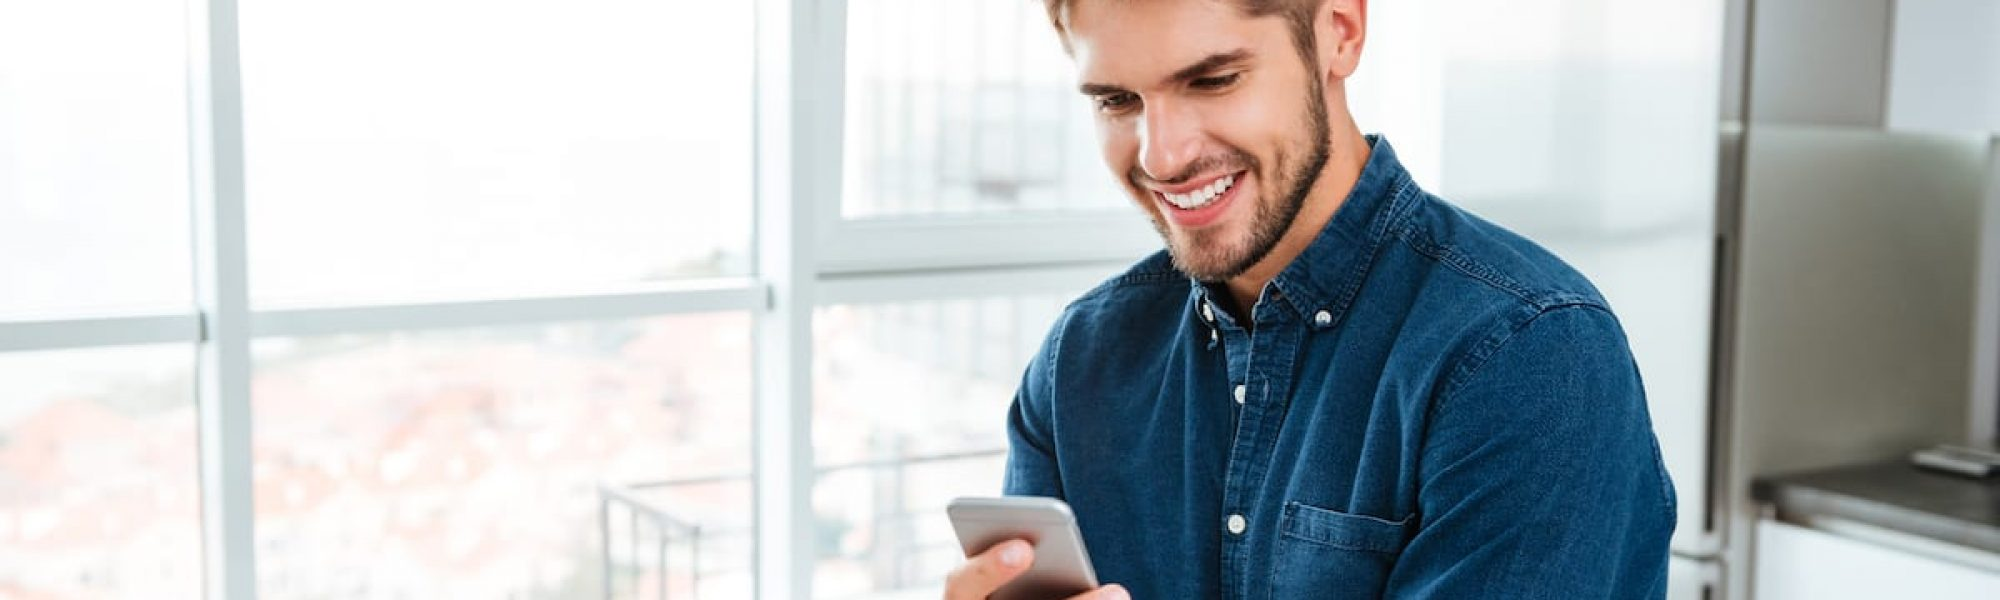 Picture of young man using a smartphone and smiling. Looking at smartphone.